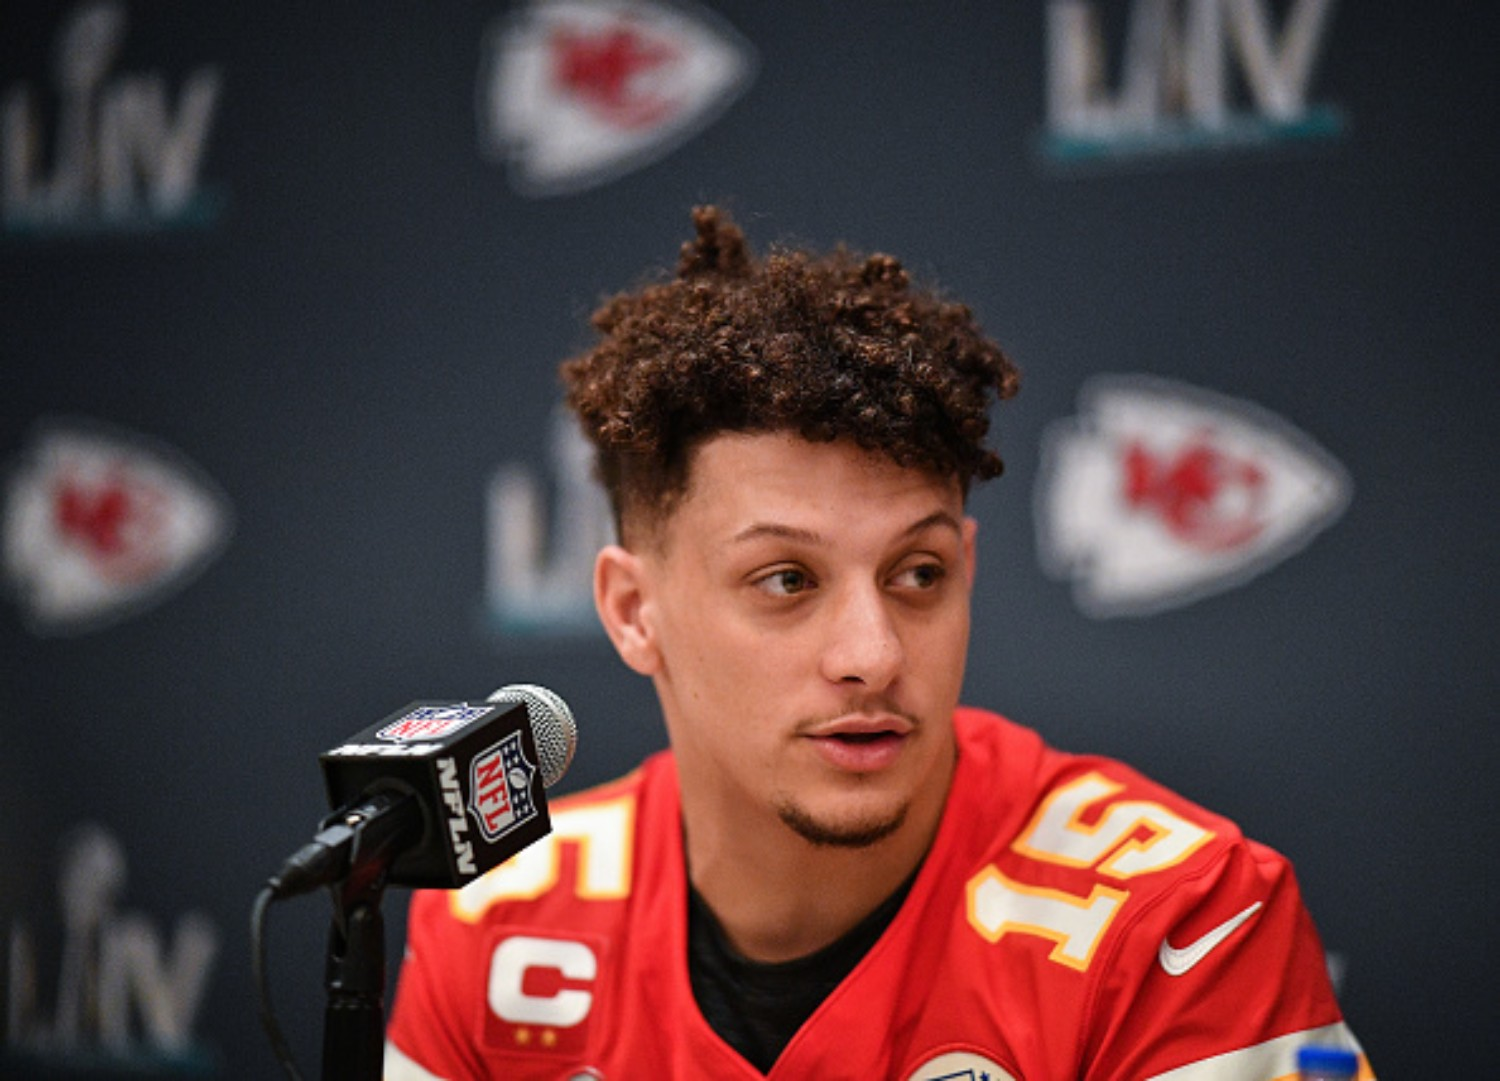 Patrick Mahomes had a message for Ohio State after the Buckeyes first win of the 2020 season